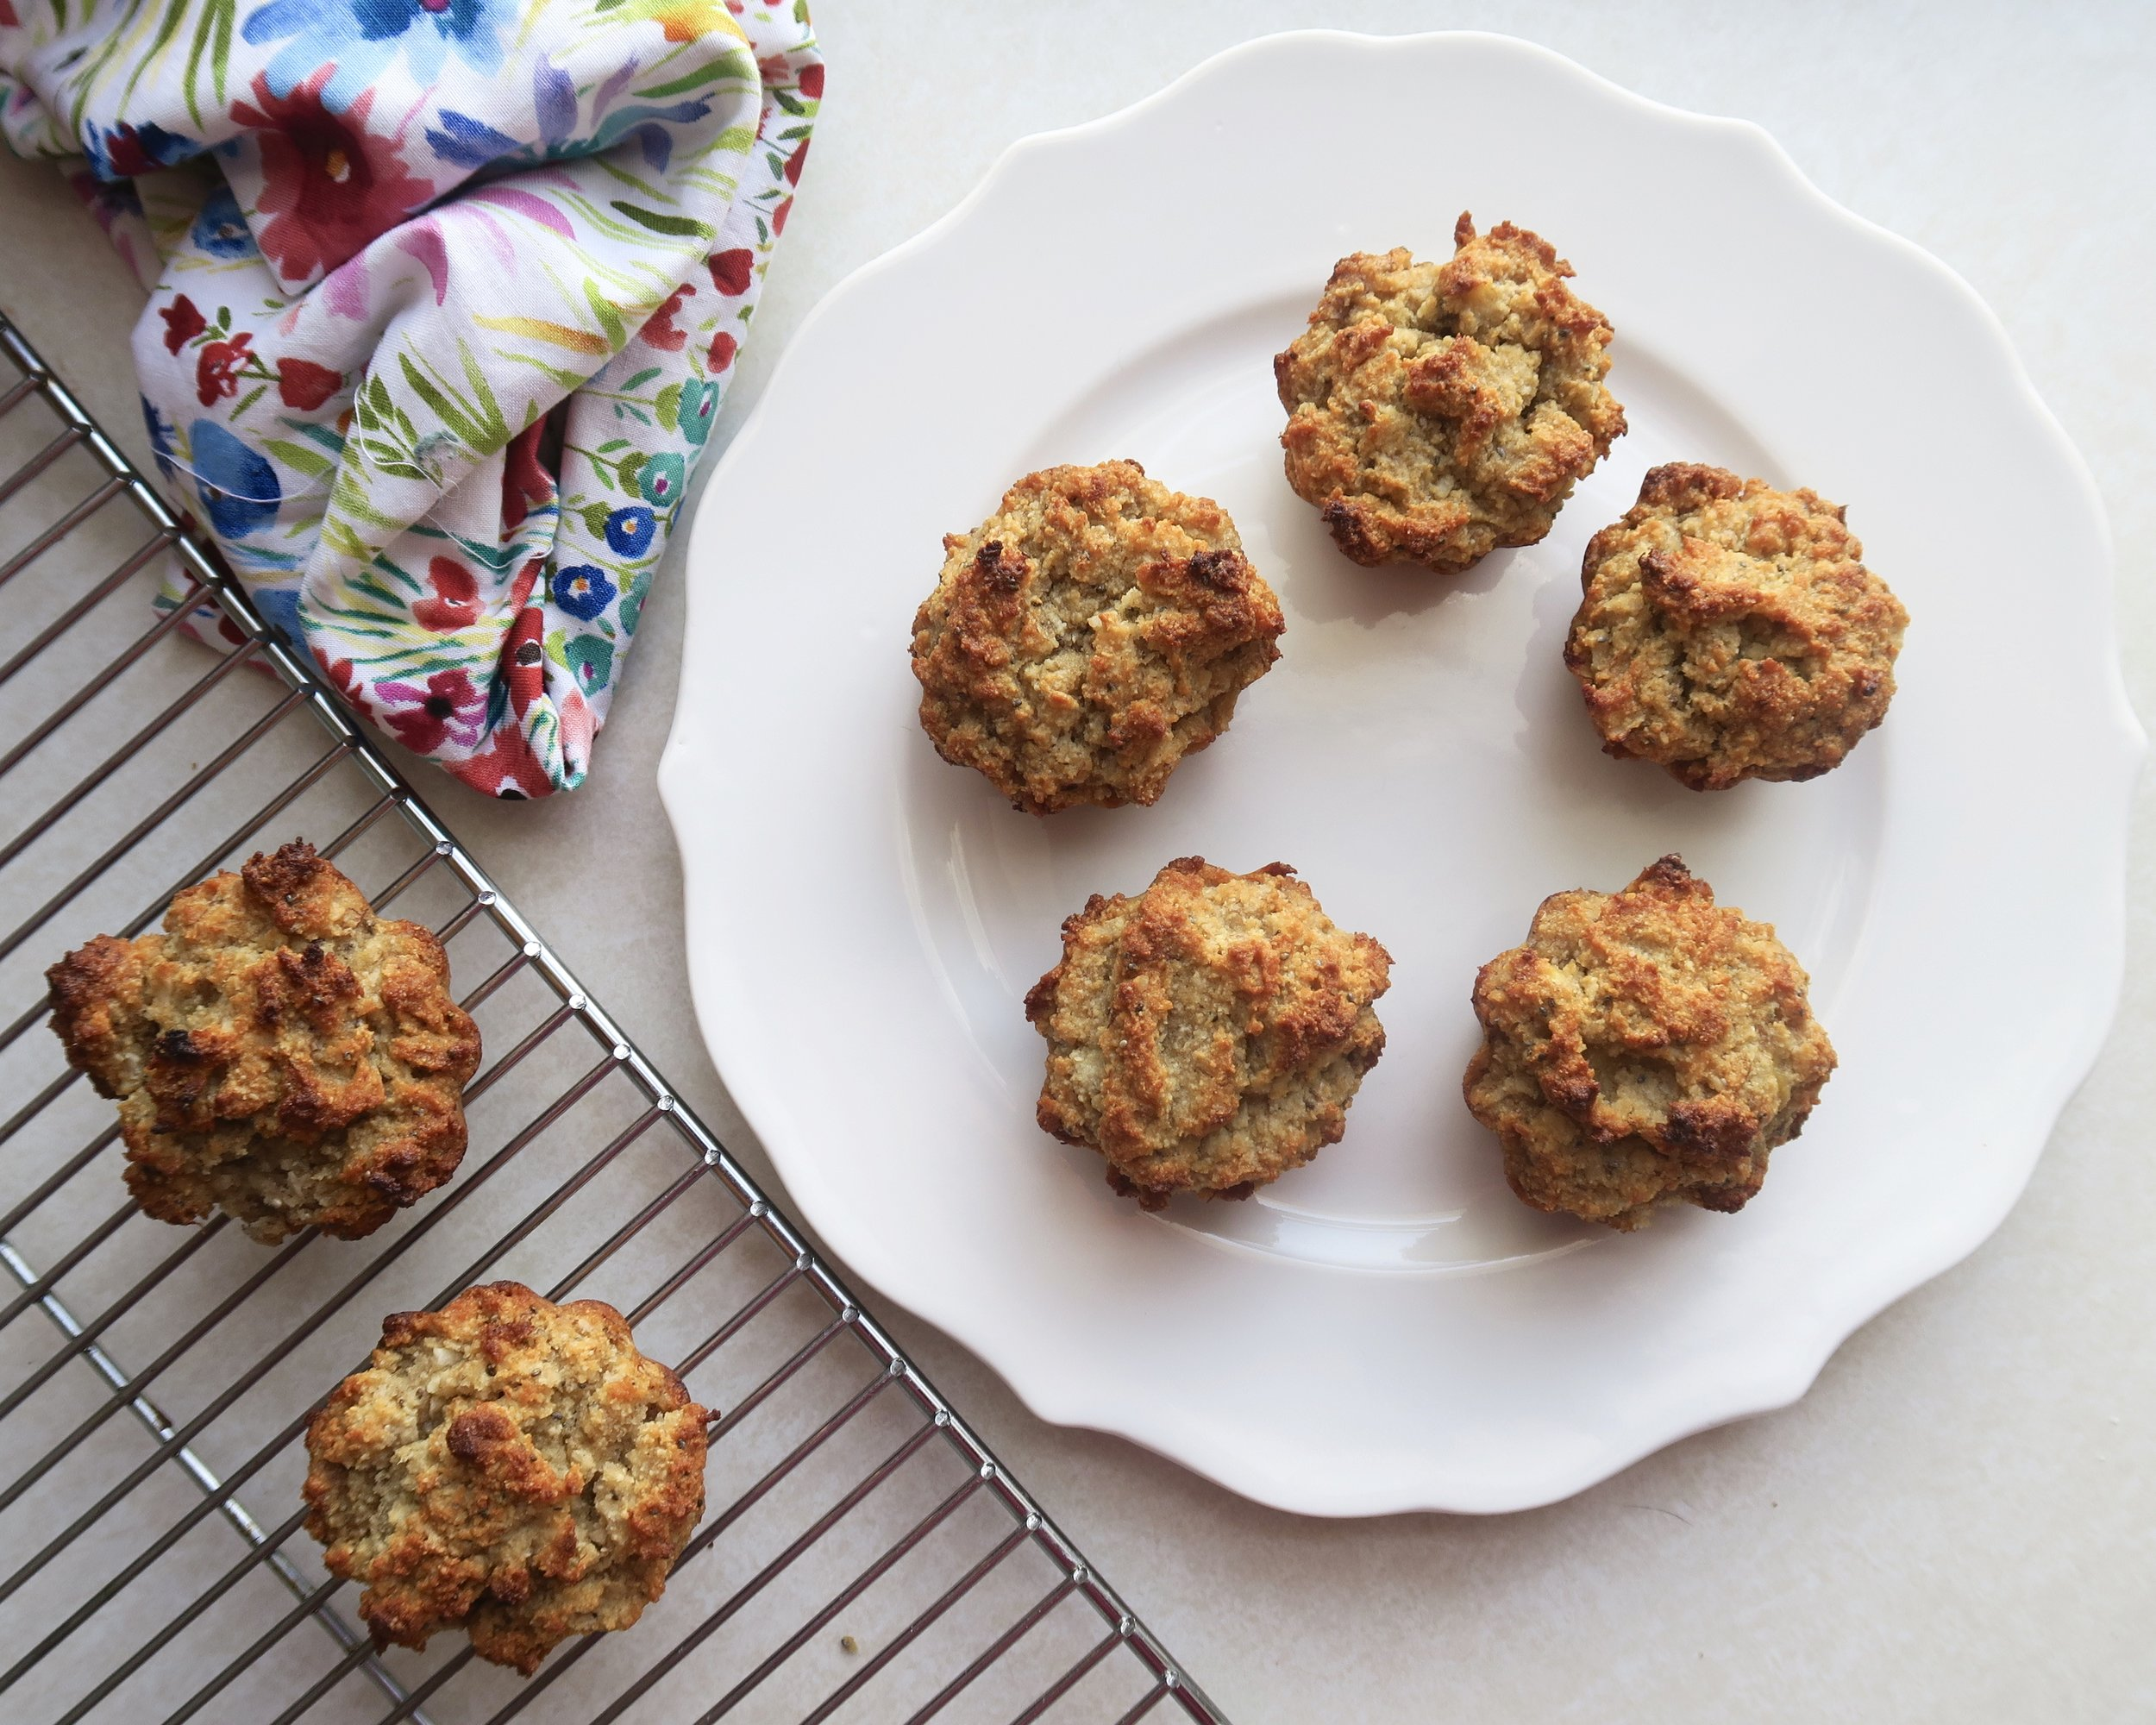 Lake Superior Kitchen, Coconut Banana Muffins, Grain Free, breakfast, paleo